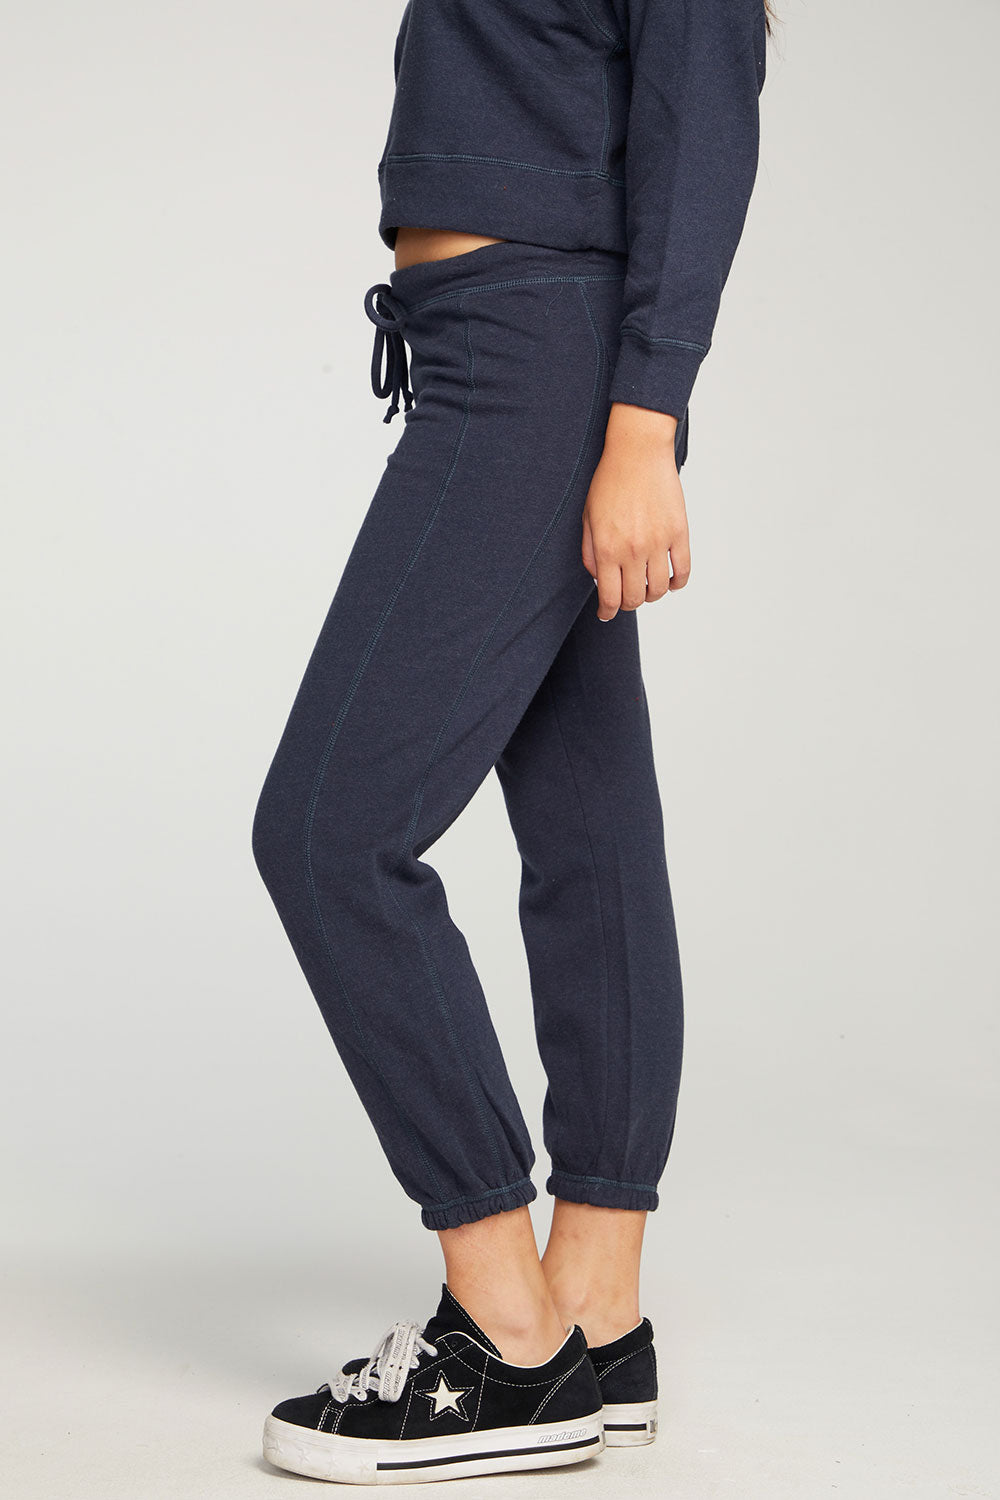 Cashmere Fleece Paneled Jogger WOMENS chaserbrand4.myshopify.com